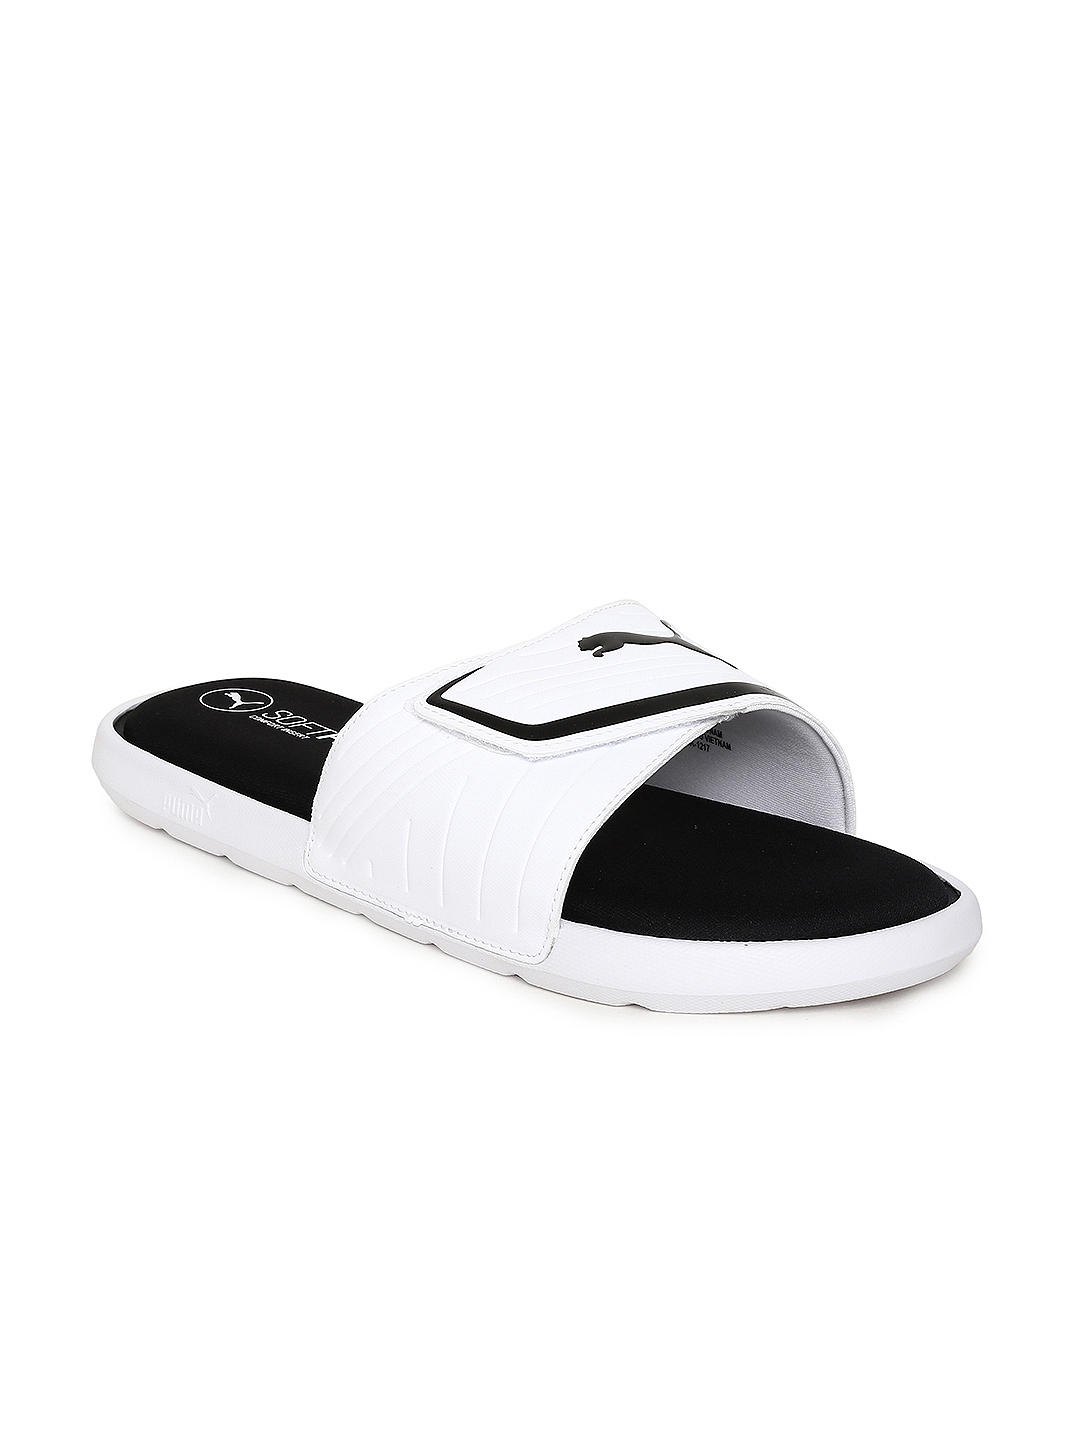 e196edd3a2a47 Buy Puma Men White   Black Starcat Sfoam Slides Sliders - Flip Flops ...